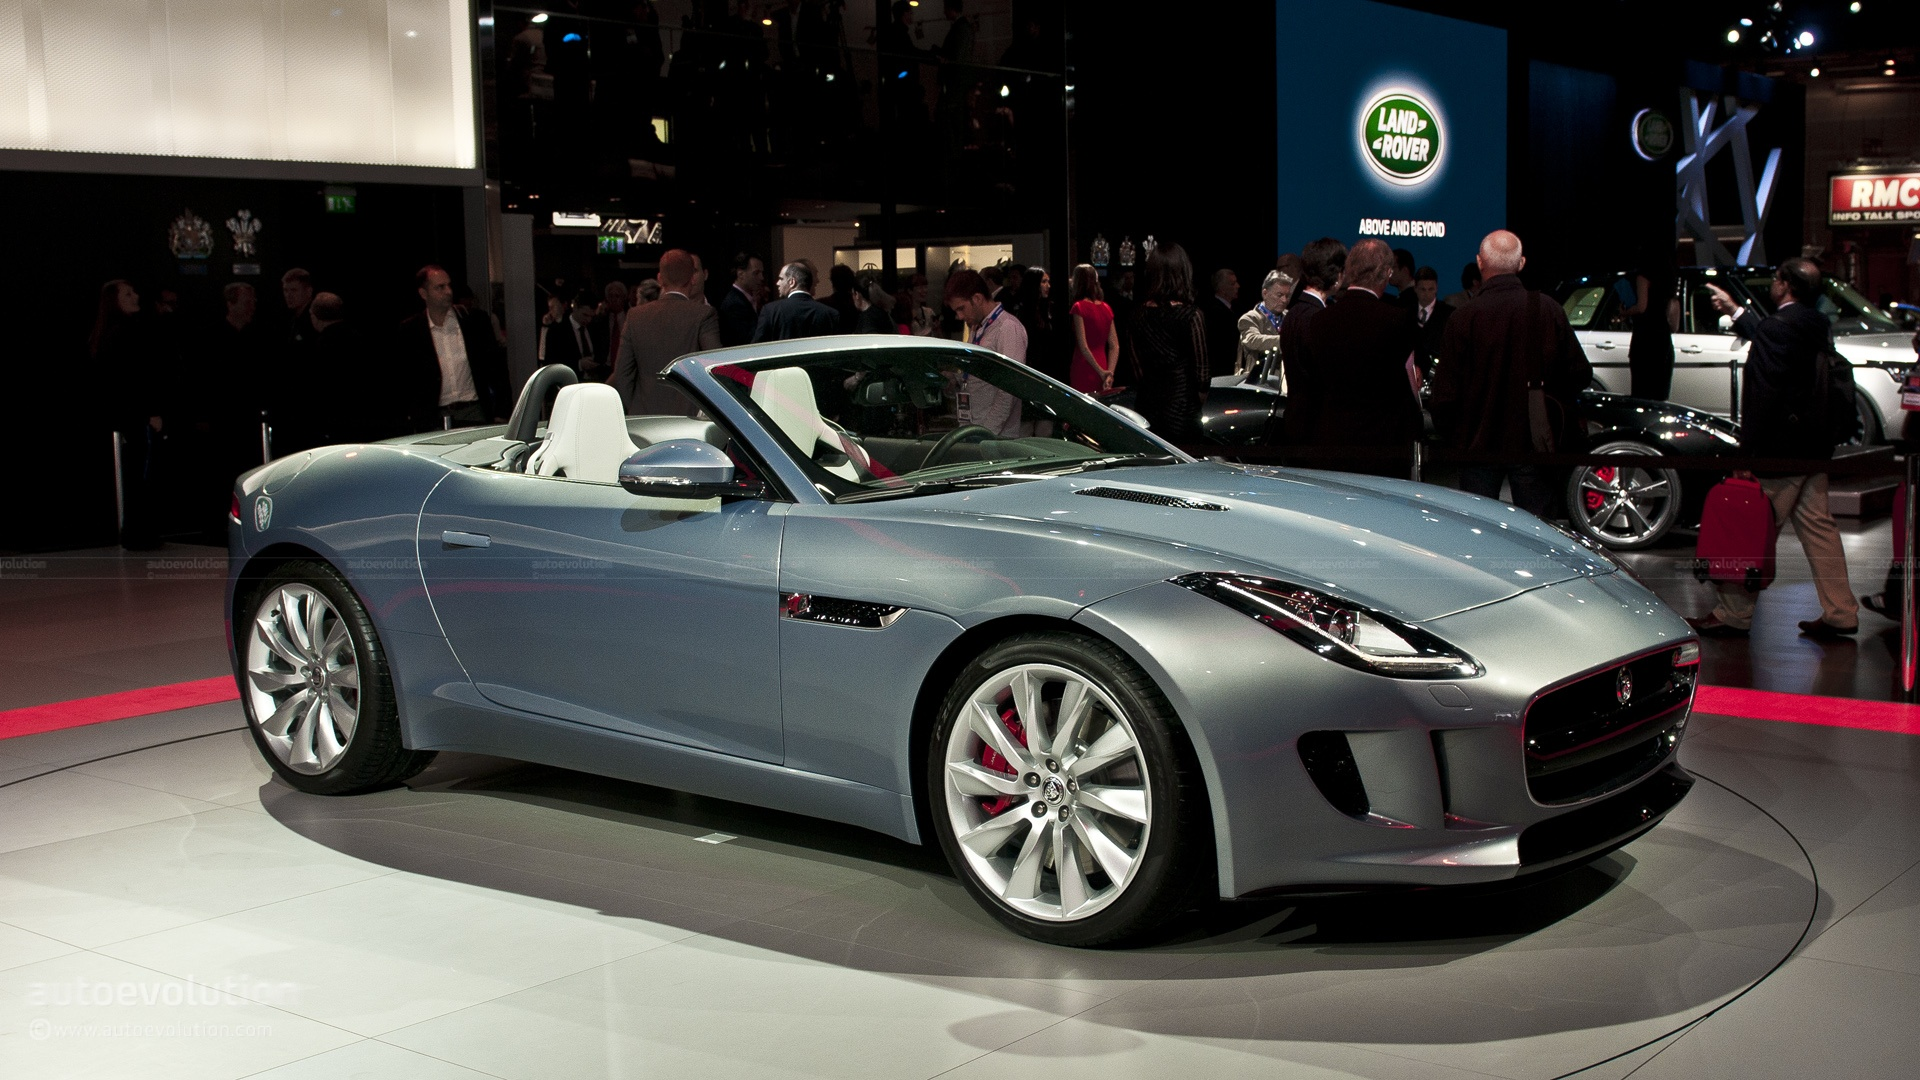 2014 jaguar f type us order guide leaked autoevolution. Black Bedroom Furniture Sets. Home Design Ideas